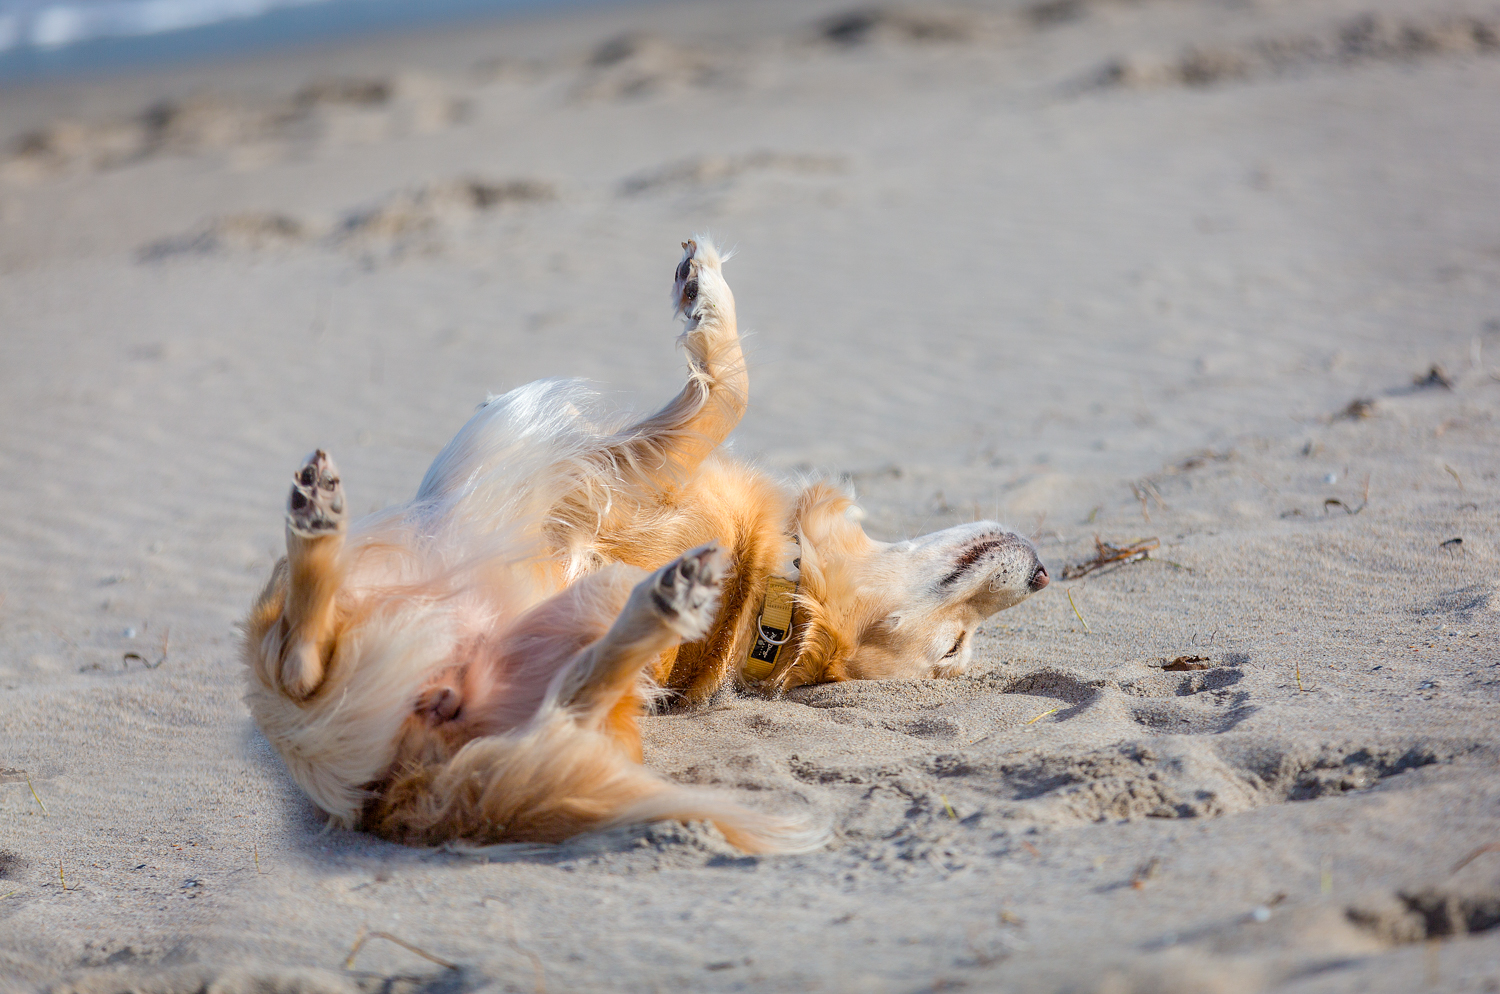 A roll in the warm sand feels so good!!